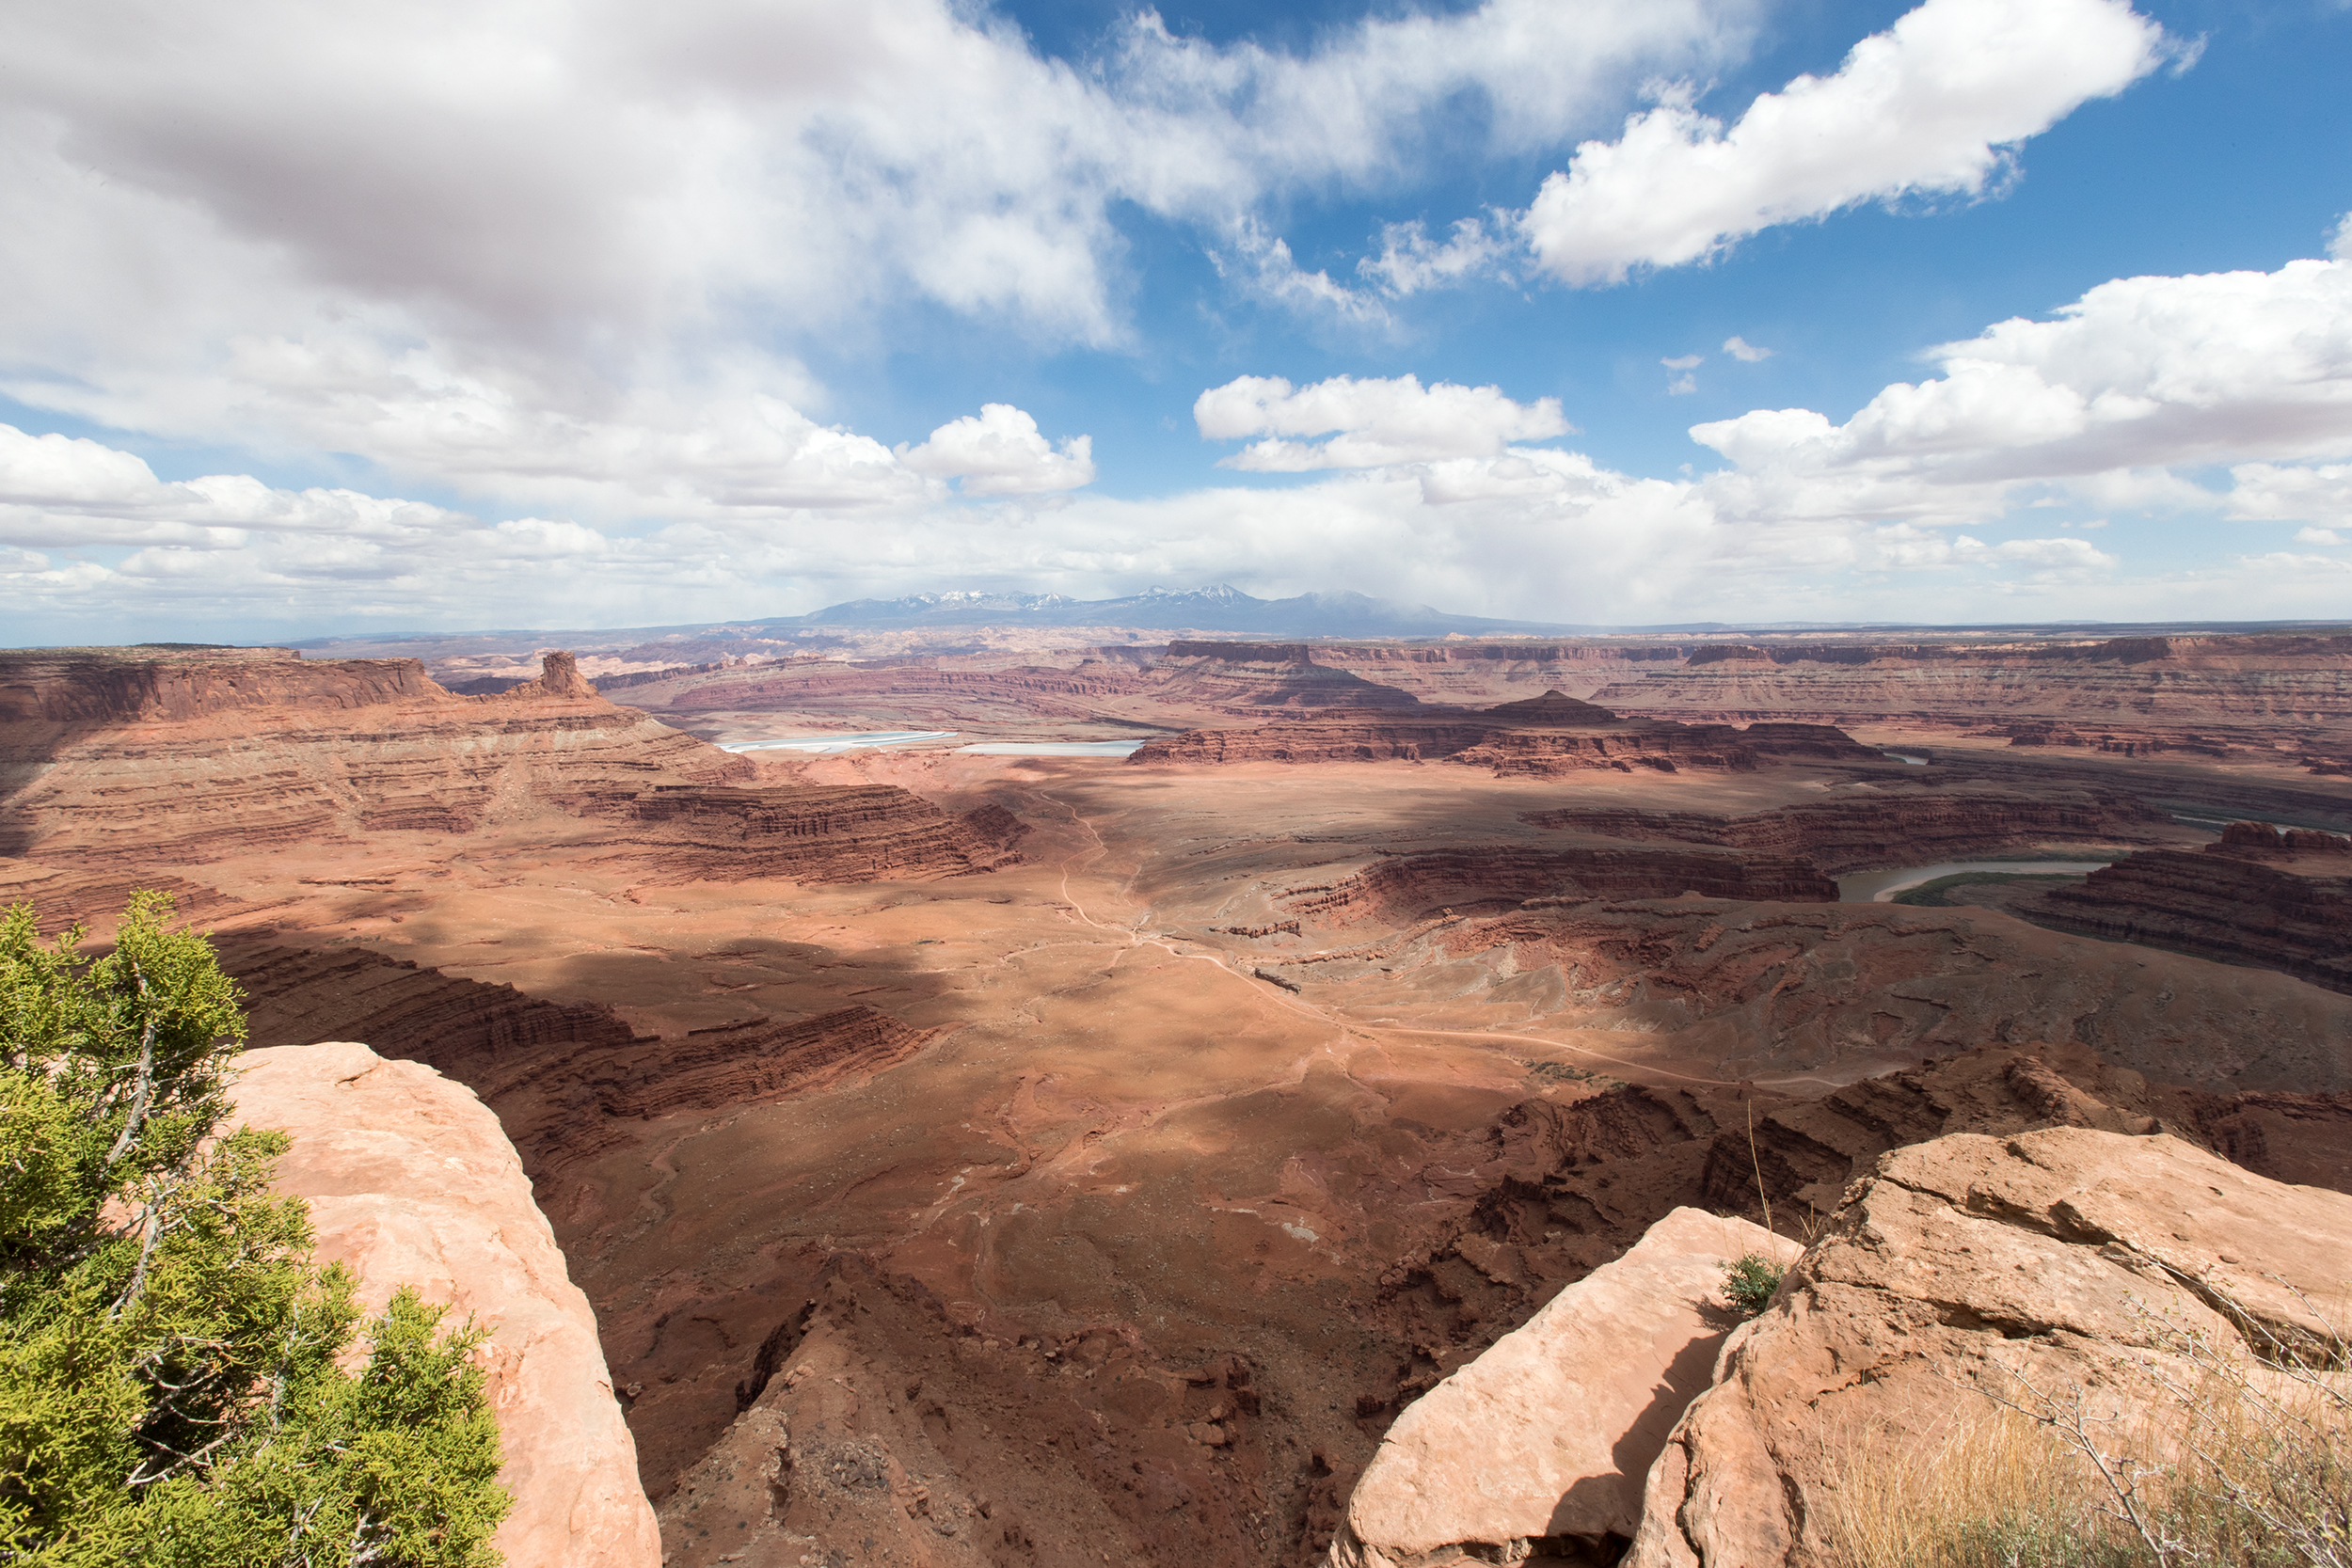 NATLPARKING_travel_rv_adventure_canyonlands_0927_WB